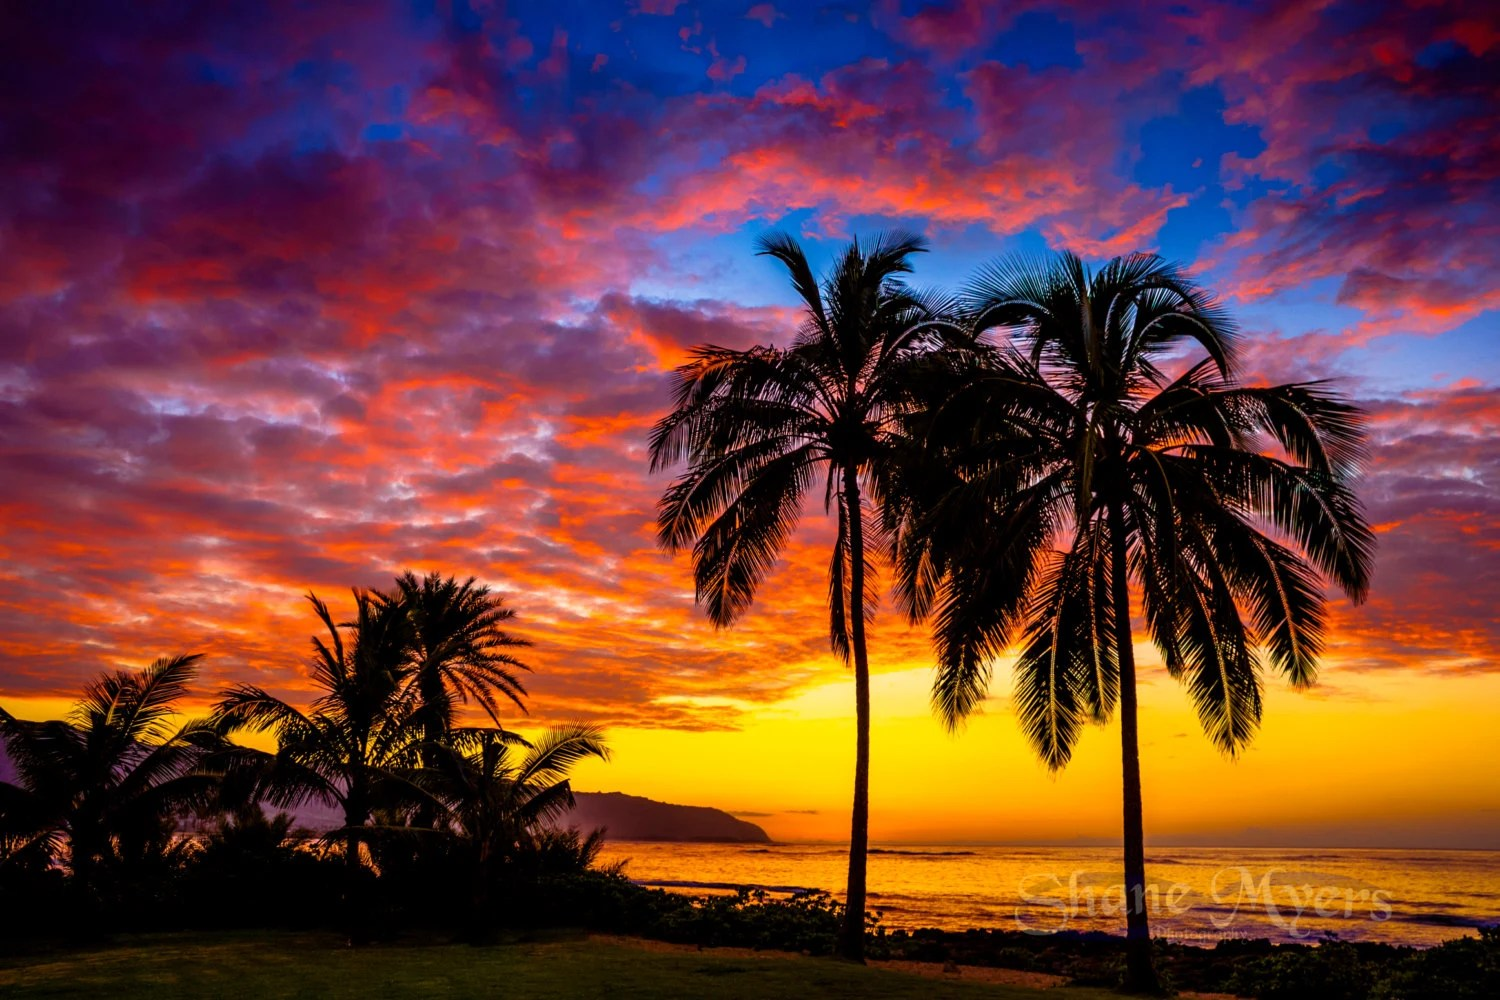 Kodak Black Wallpaper Beautiful Hawaiian Sunset Fine Art Print Titled